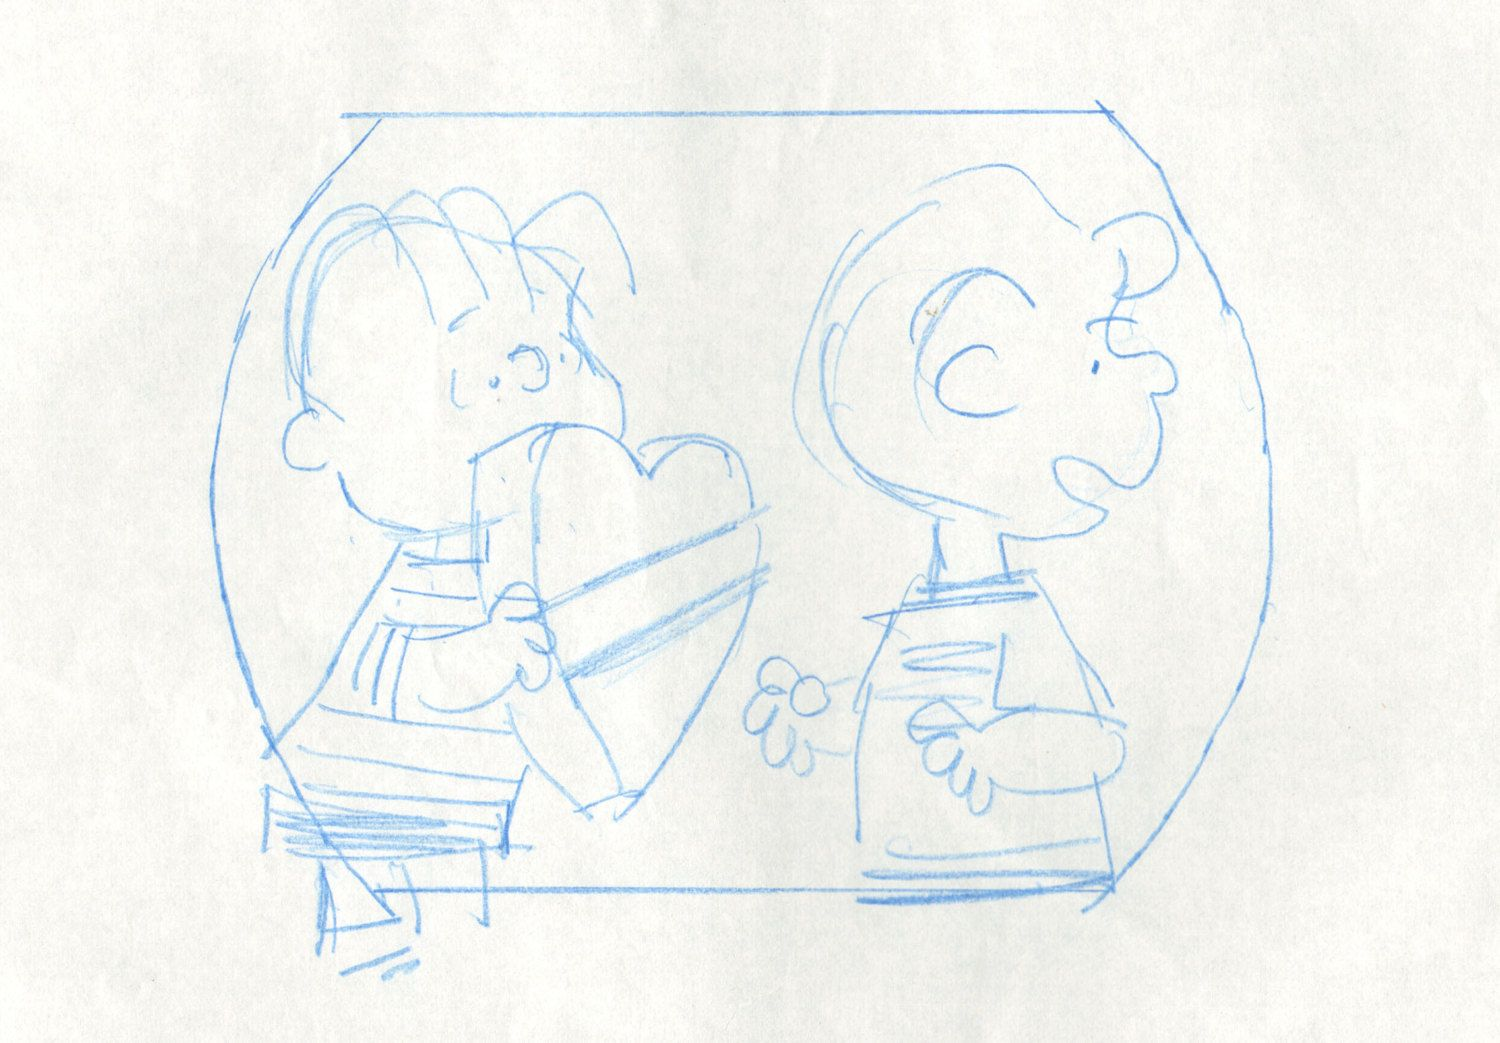 Peanuts Linus Schroeder Original Animation Cel Layout drawing 1975 COA 2* by CharlesScottGallery on Etsy